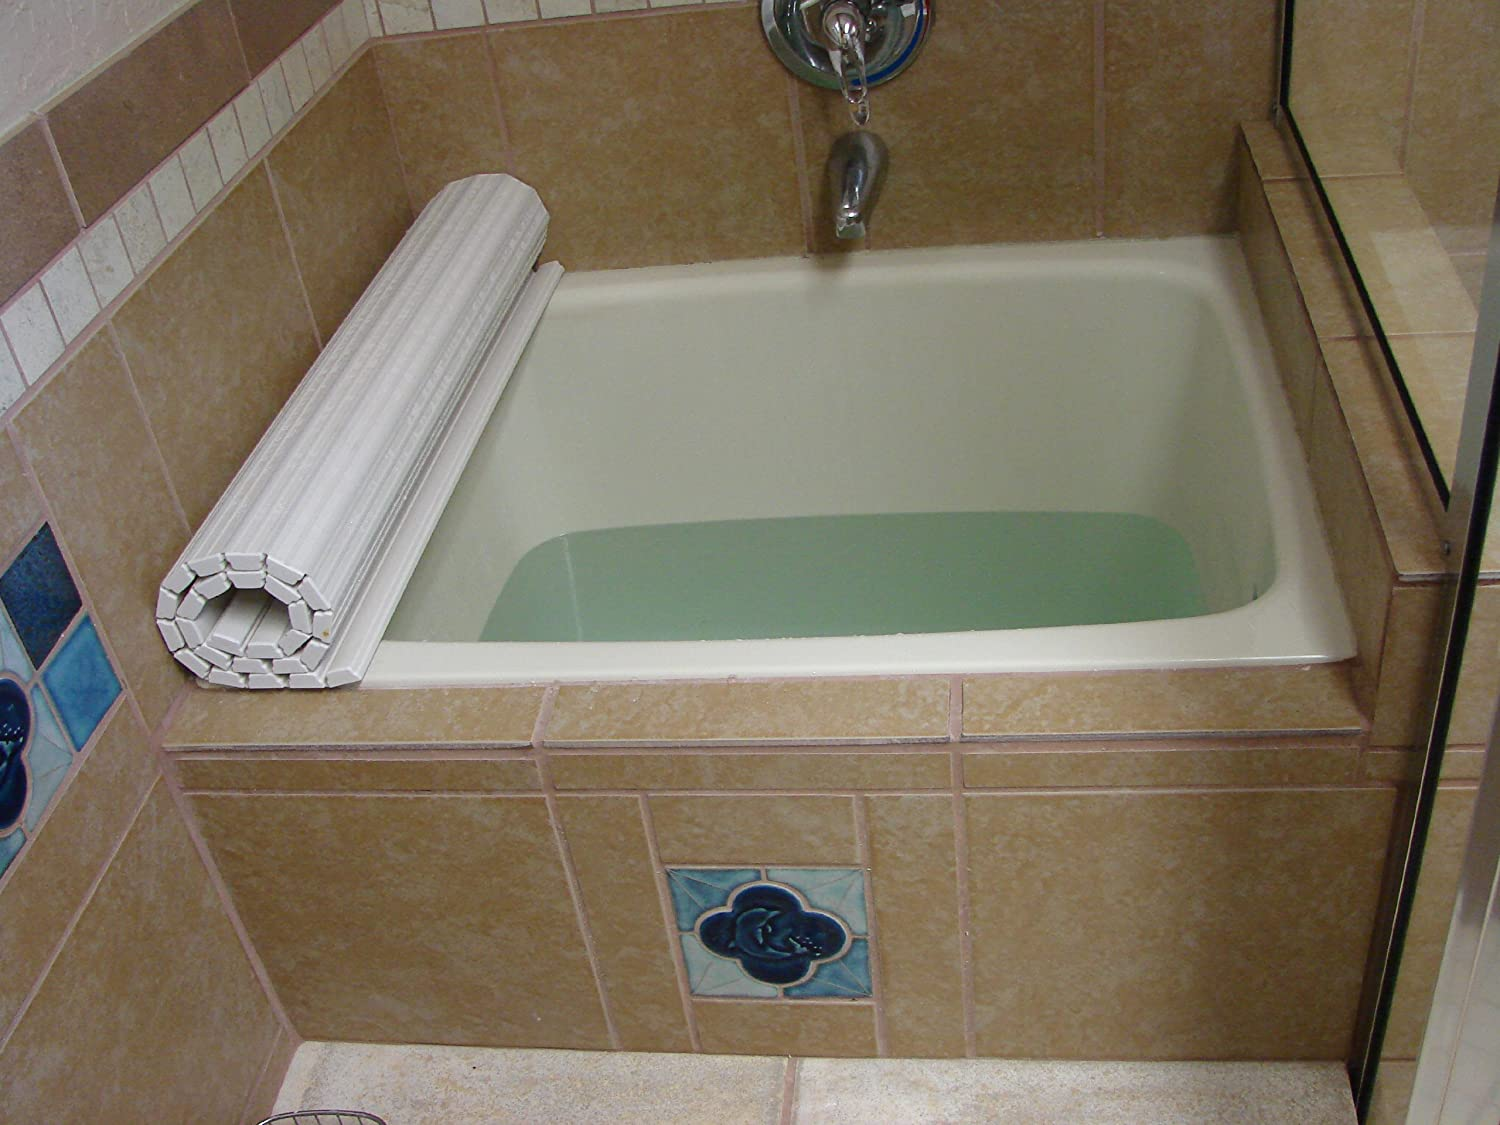 OFULO 1 Japanese Bathtub   Soaking Tubs   Amazon.com